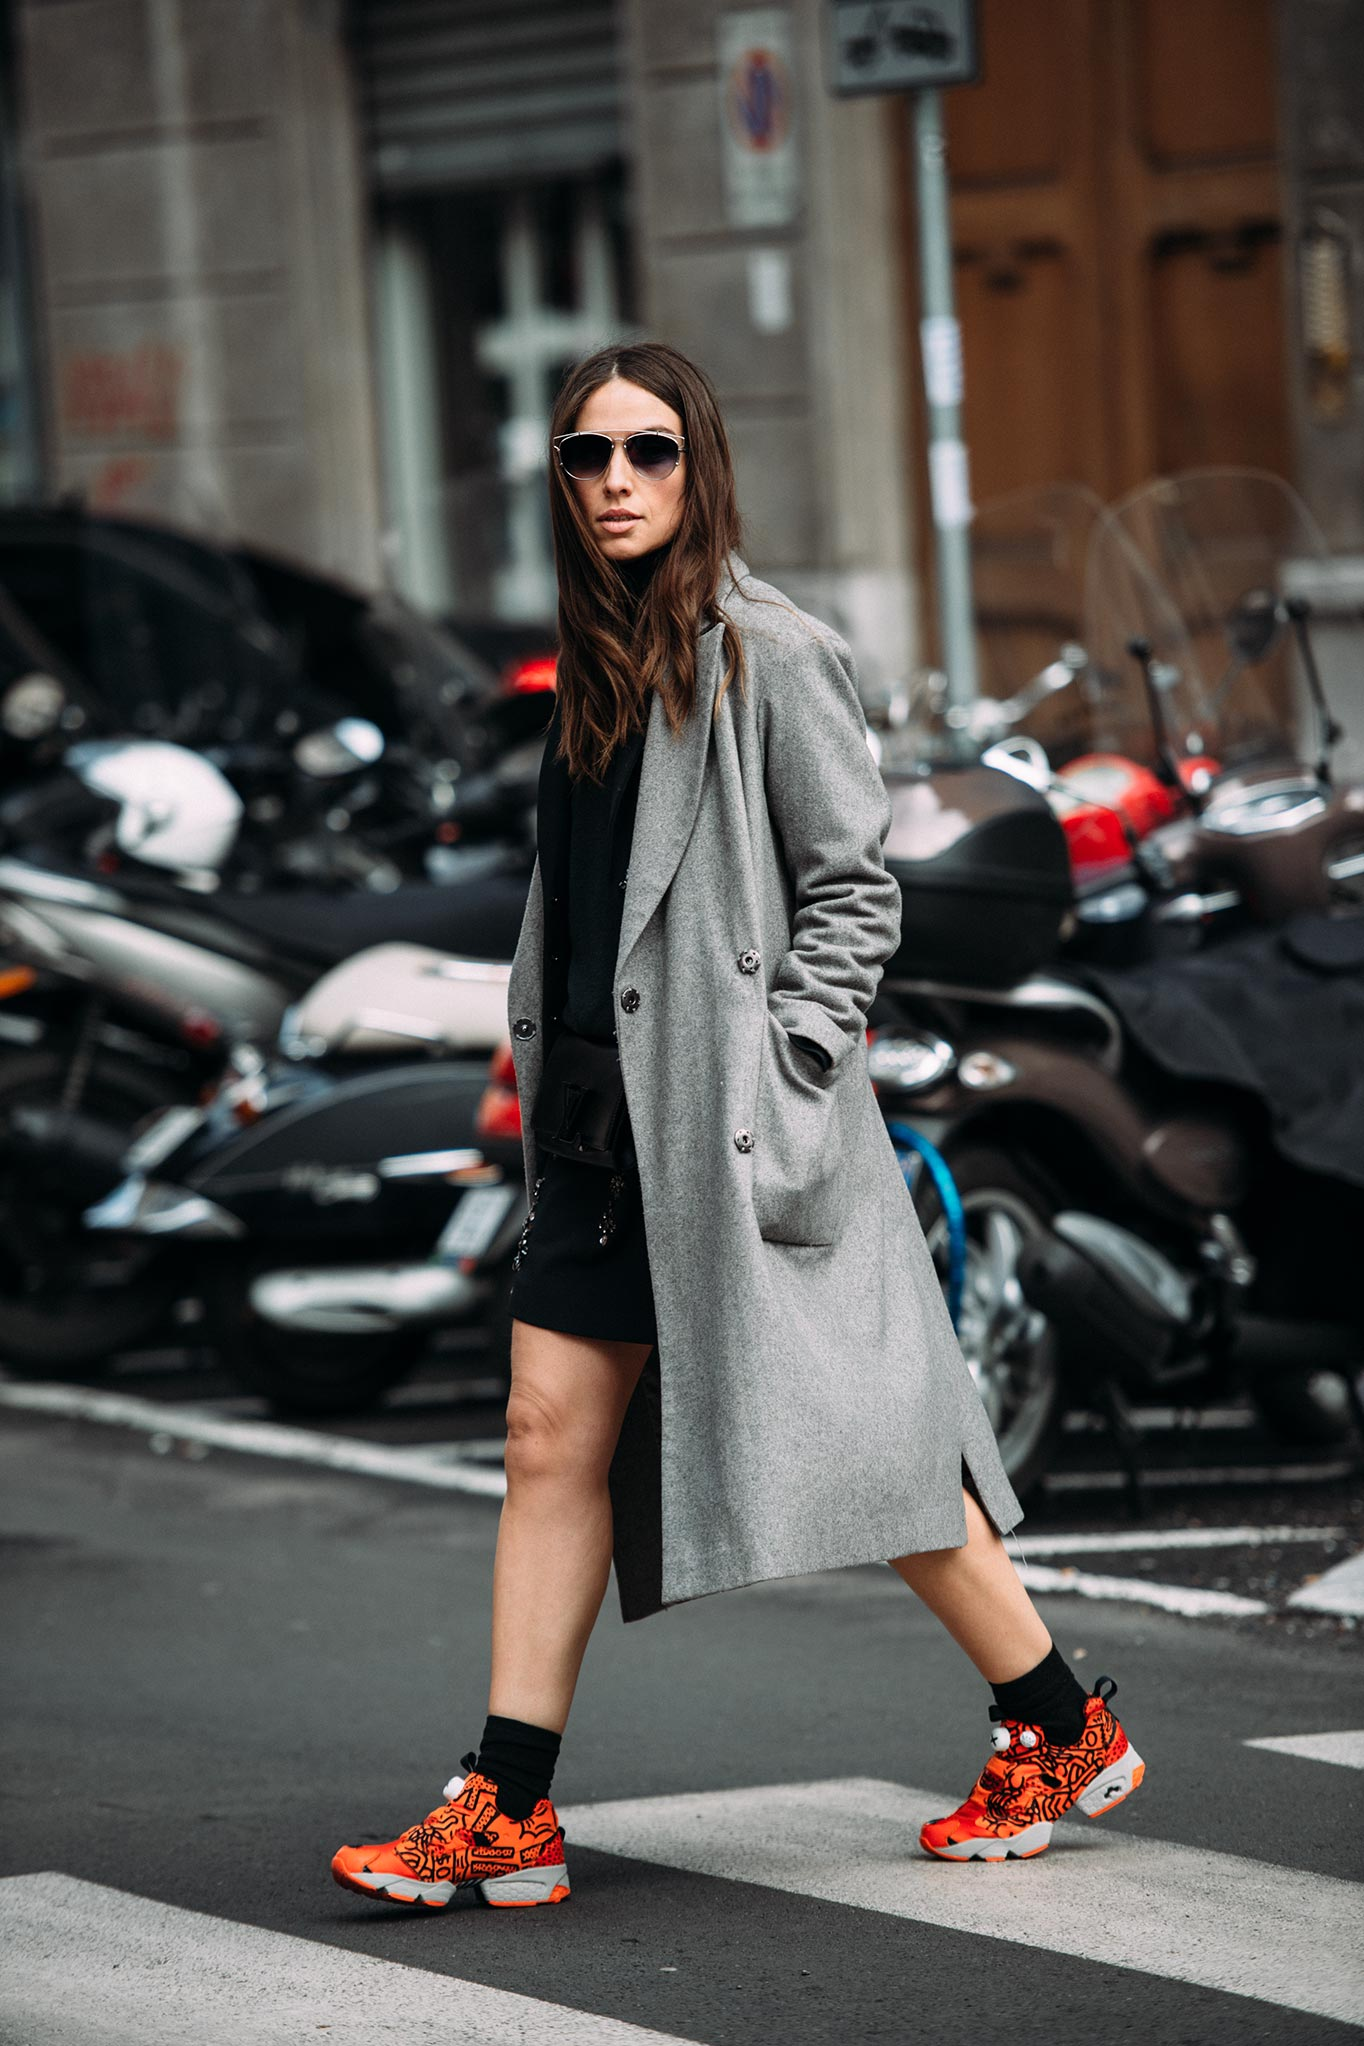 Erika Boldrin at Paris Fashion Week Fall/Winter 2015